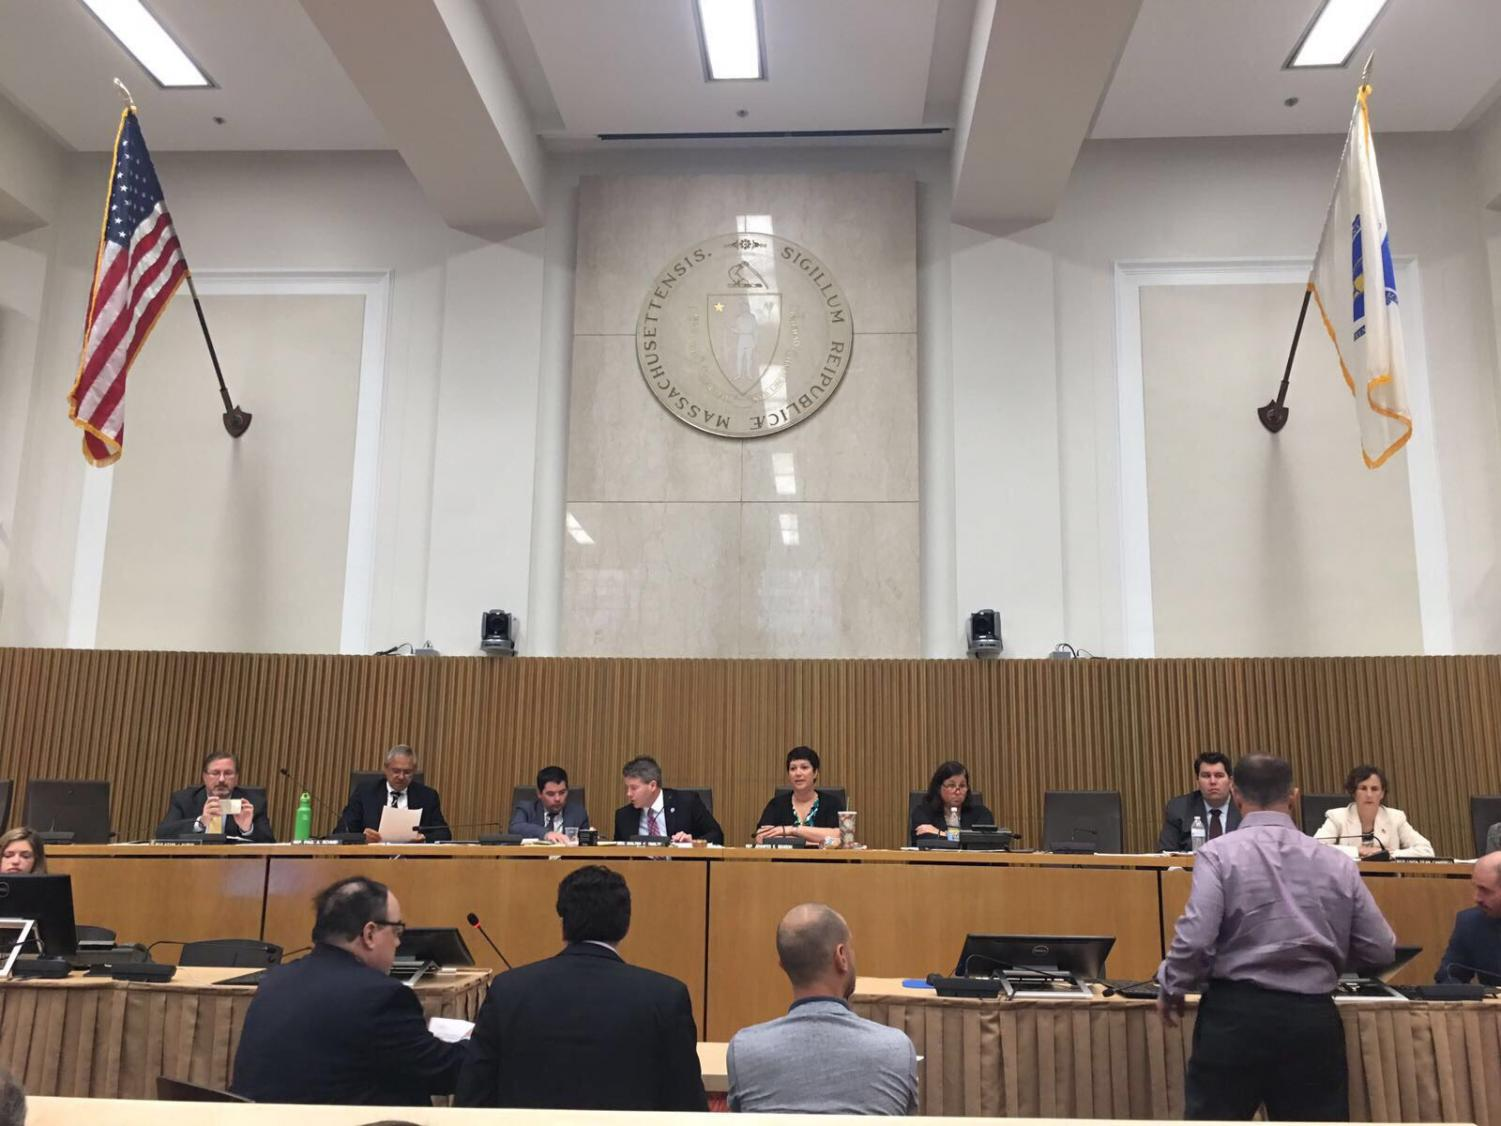 At a public hearing held on July 18, 2017 by the Massachusetts State Legislature, several speakers argued for and against the installment of a new anti-discriminatory law, including junior Adi Mayer.